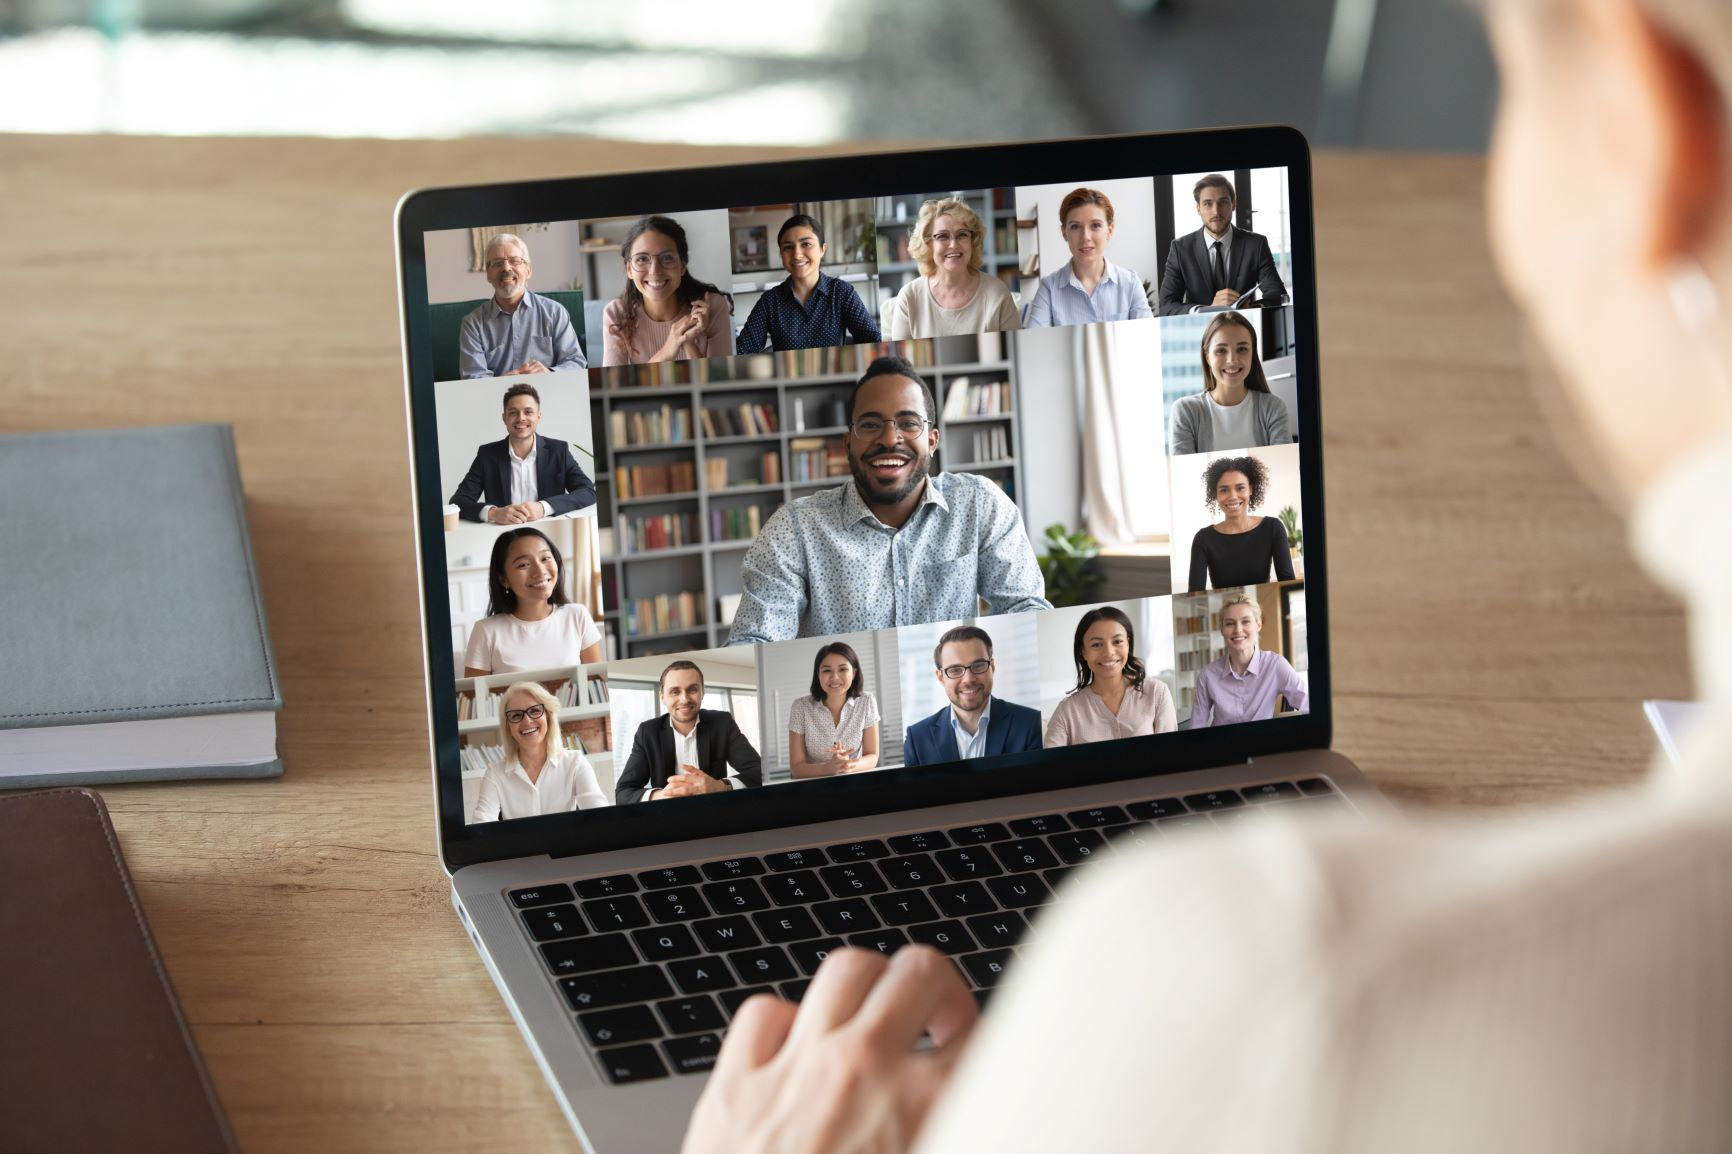 WEB - Group video Conference call